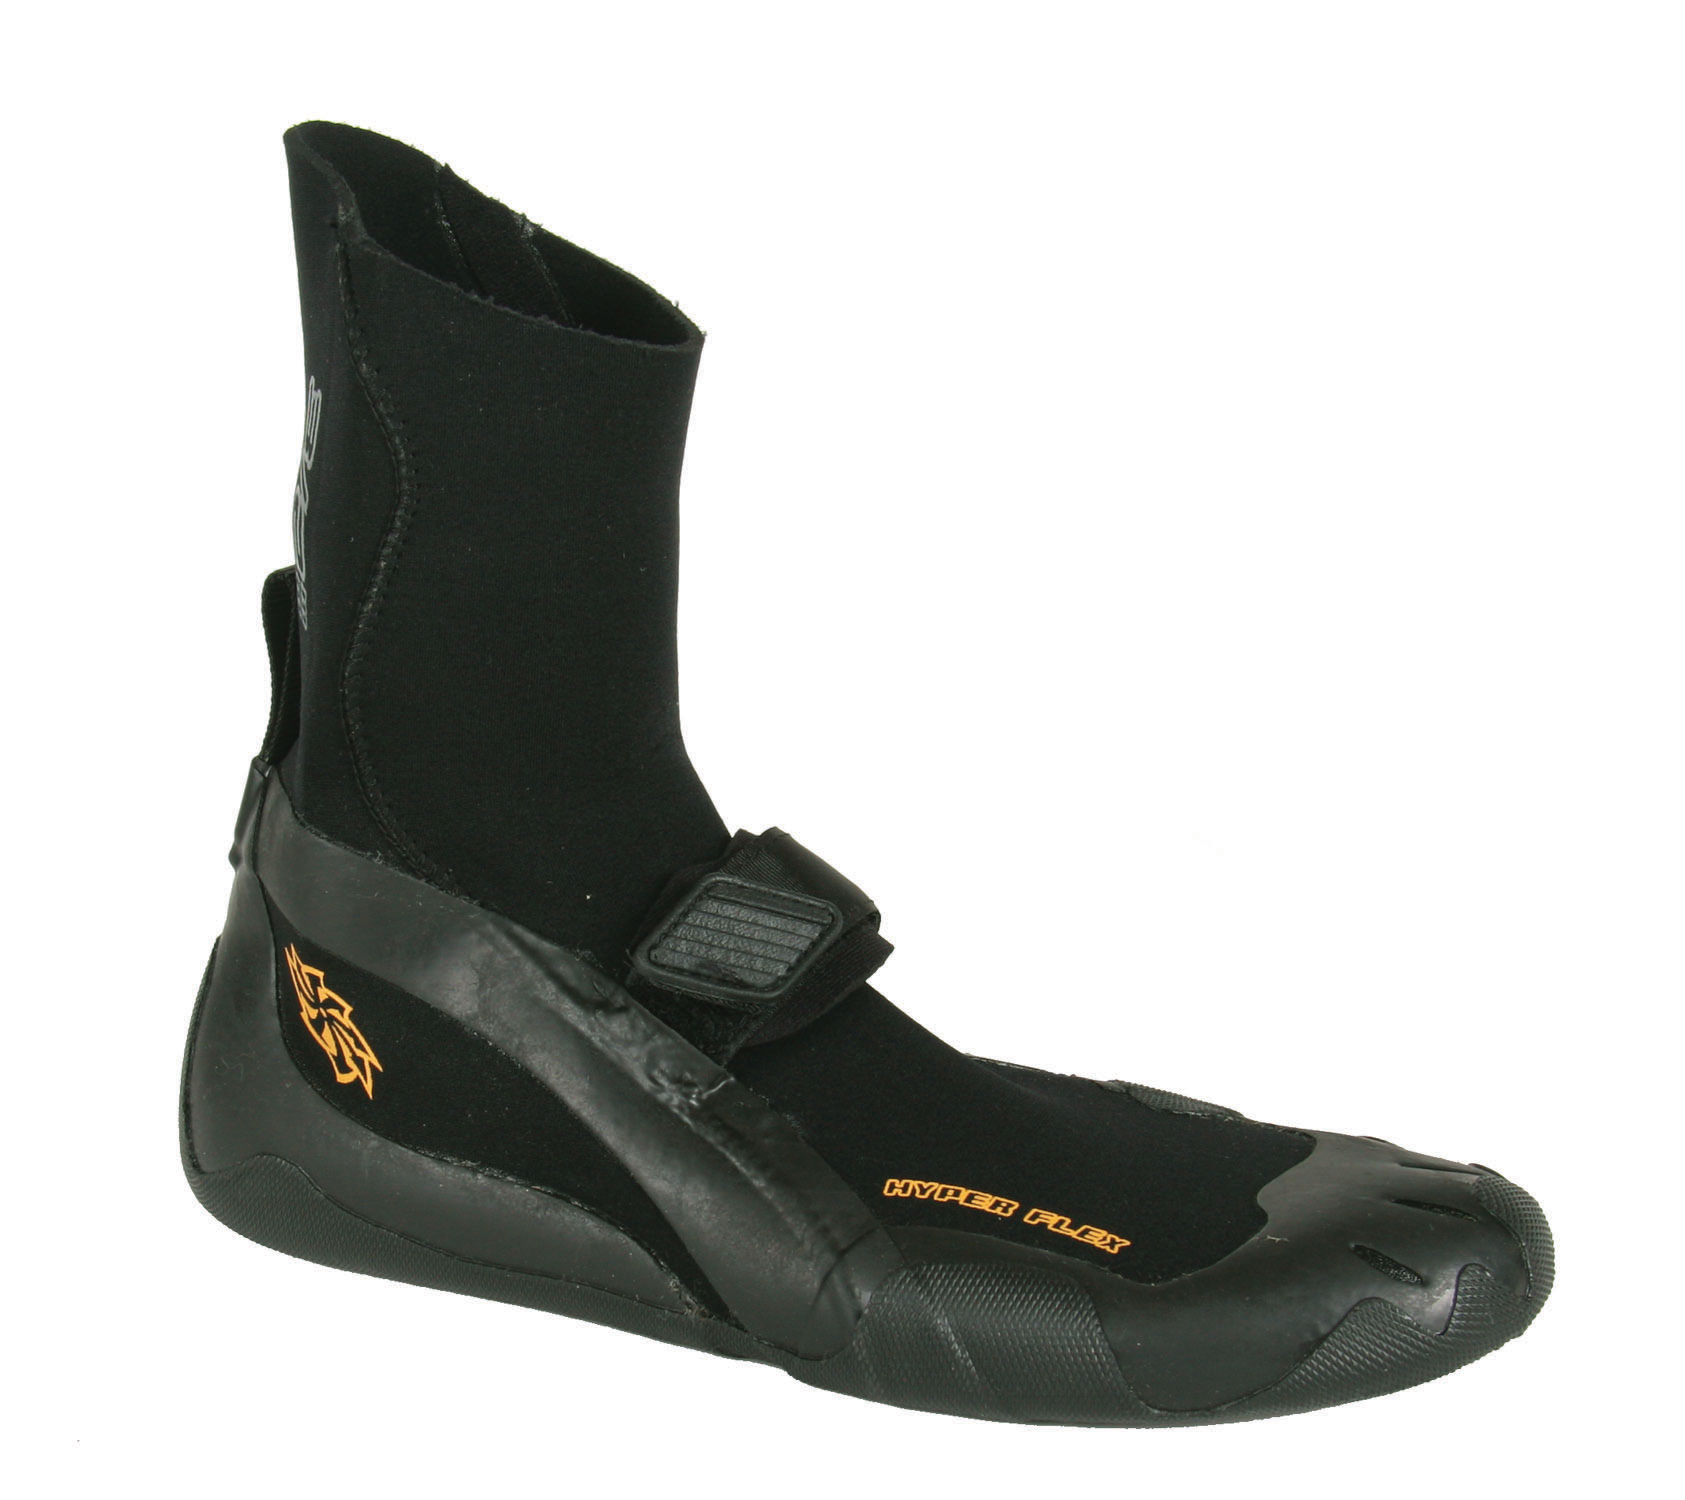 Surf The Hyperflex Cyclone round Toe boot is a high performance surf boot made by Hyperflex Wetsuits. As with all Hyperflex products, this boot is a perfect combination of performance and price.Key Features of the Hyperflex 3/2 Round Toe Surf Neo Boot: 100% Sealed seams: Glued, blind stitched and taped for crucial warmth in cold conditions Round Toe design for crucial warmth in cold conditions Superstretch upper for complete flexibility and range of motion New Hyperstretch upper and pull on strap makes it easy to put on and take off in all conditions and boot thicknesses. Dual-density construction. 3mm upper and 2mm footbed allows a thicker, warmer boot without sacrificing board sensitivity and control. Adjustable arch strap locks down foot and prevents sliding - $33.95